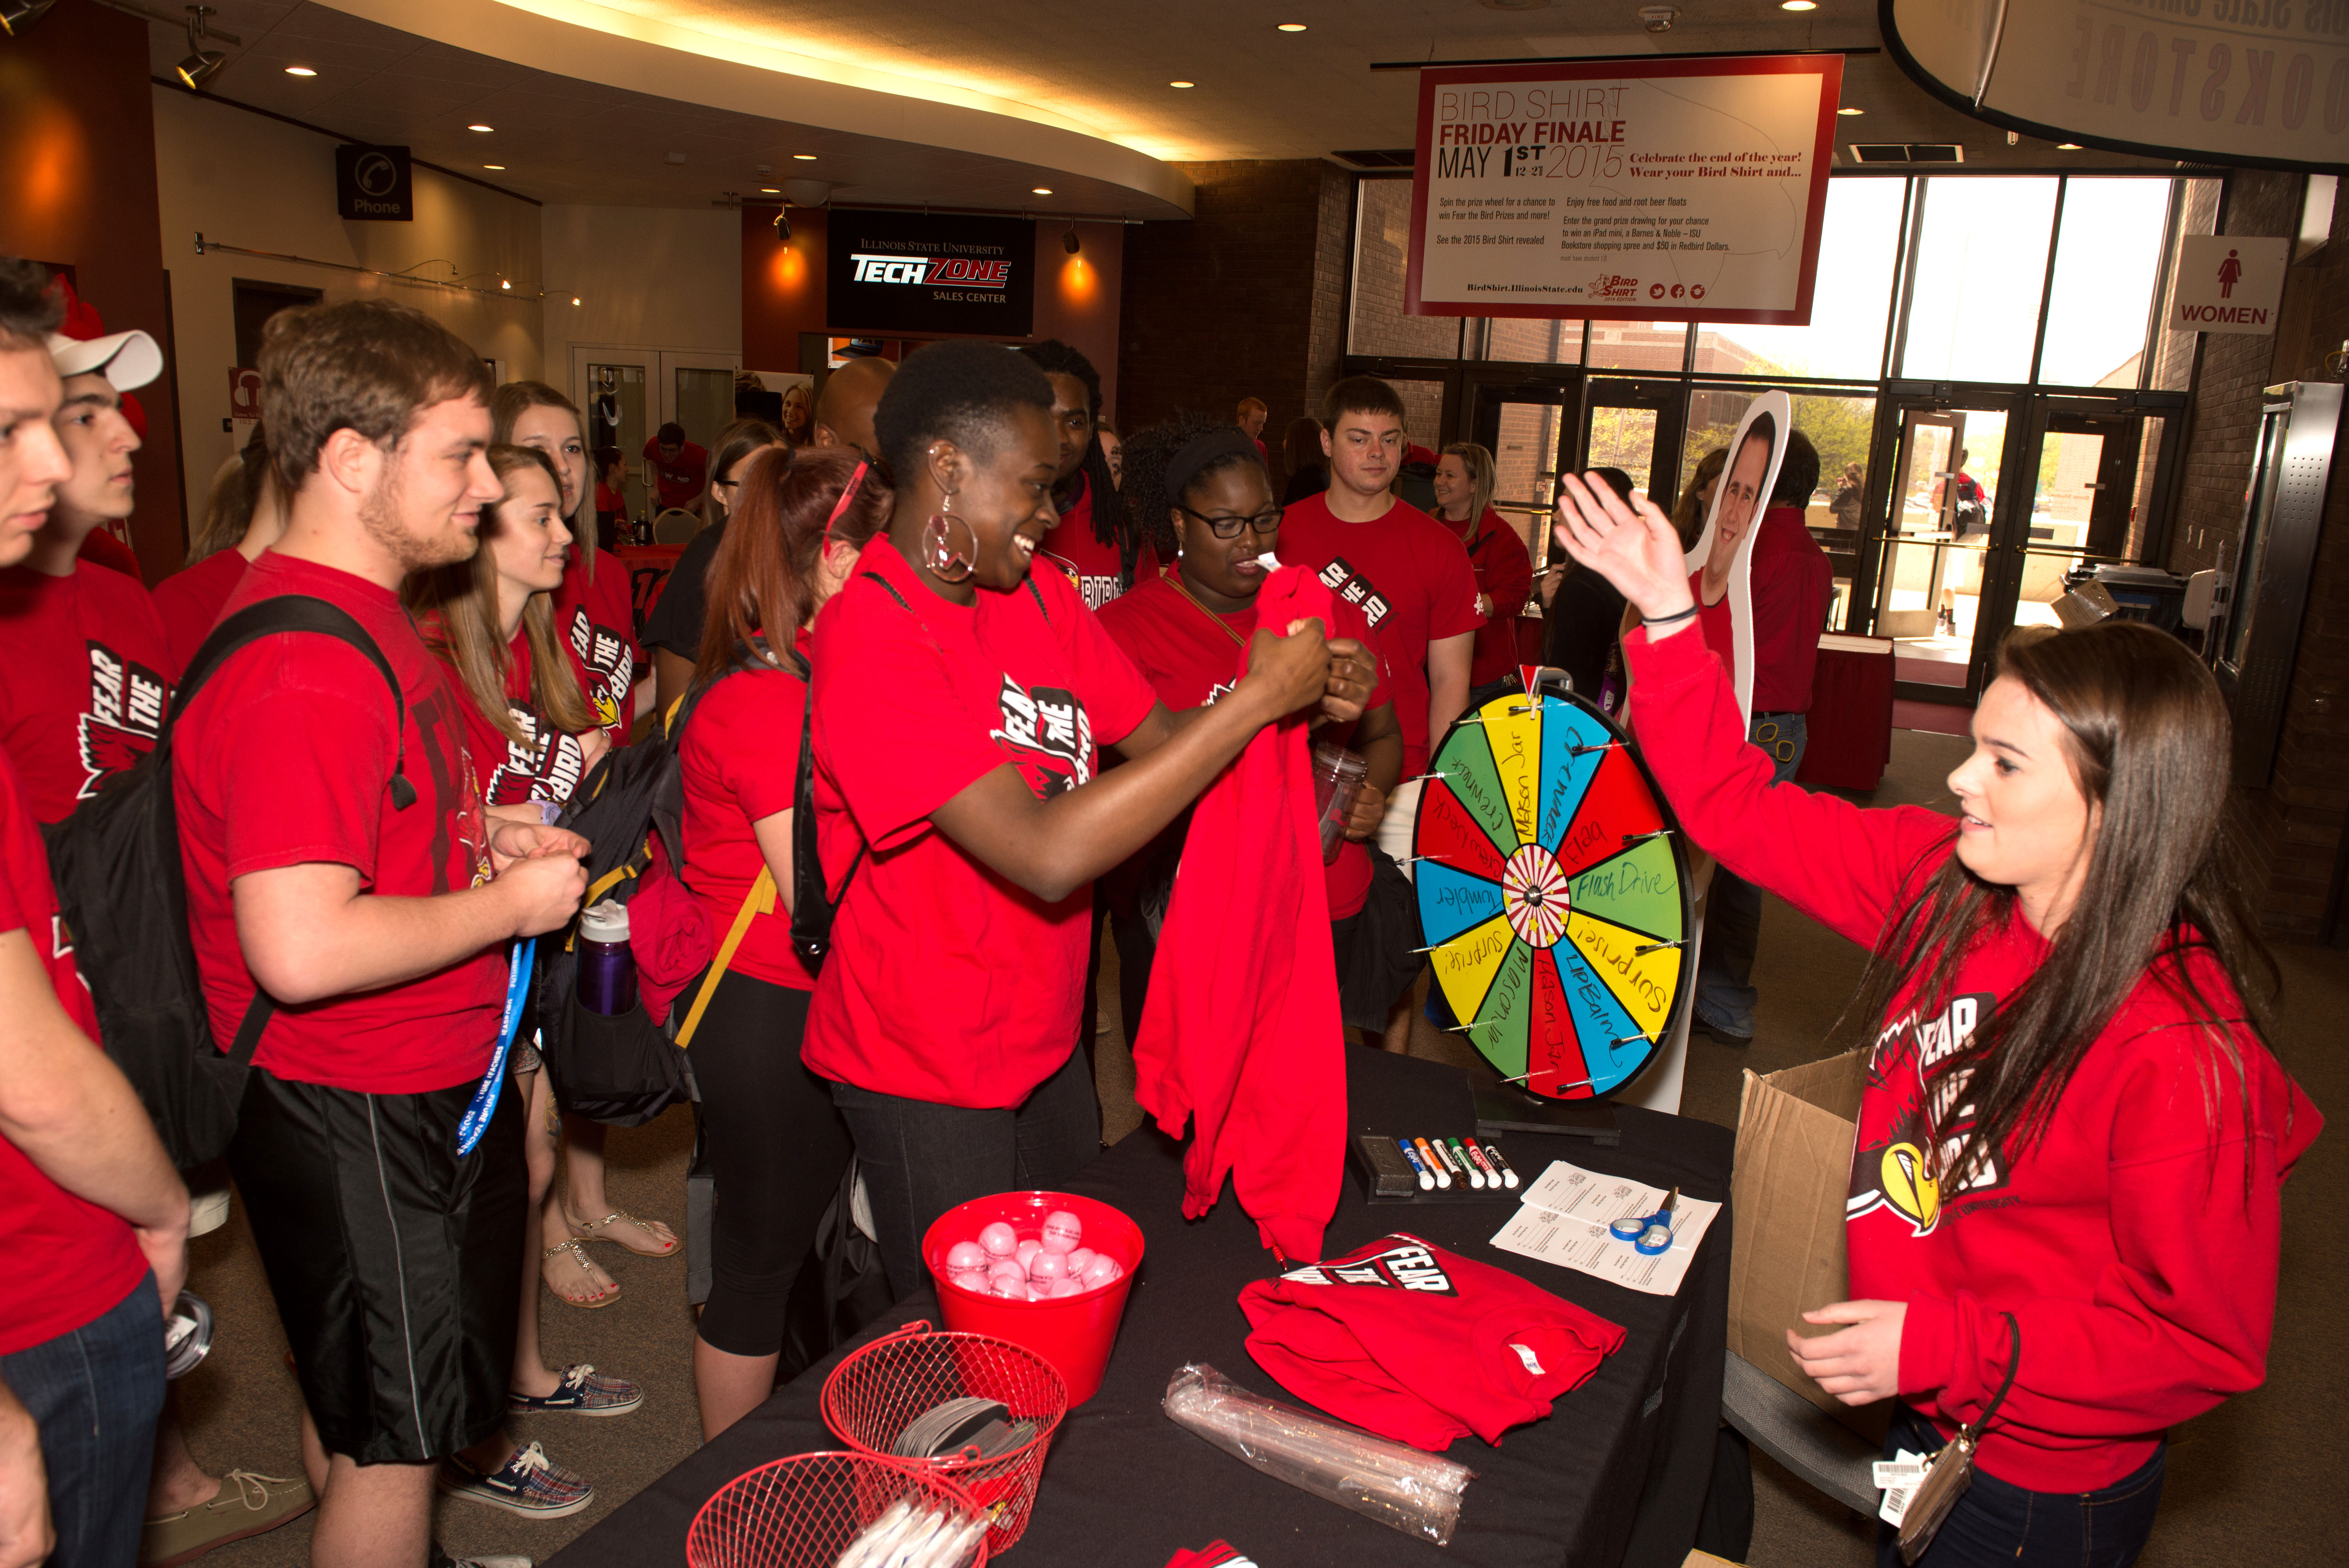 Students spin the prize wheel